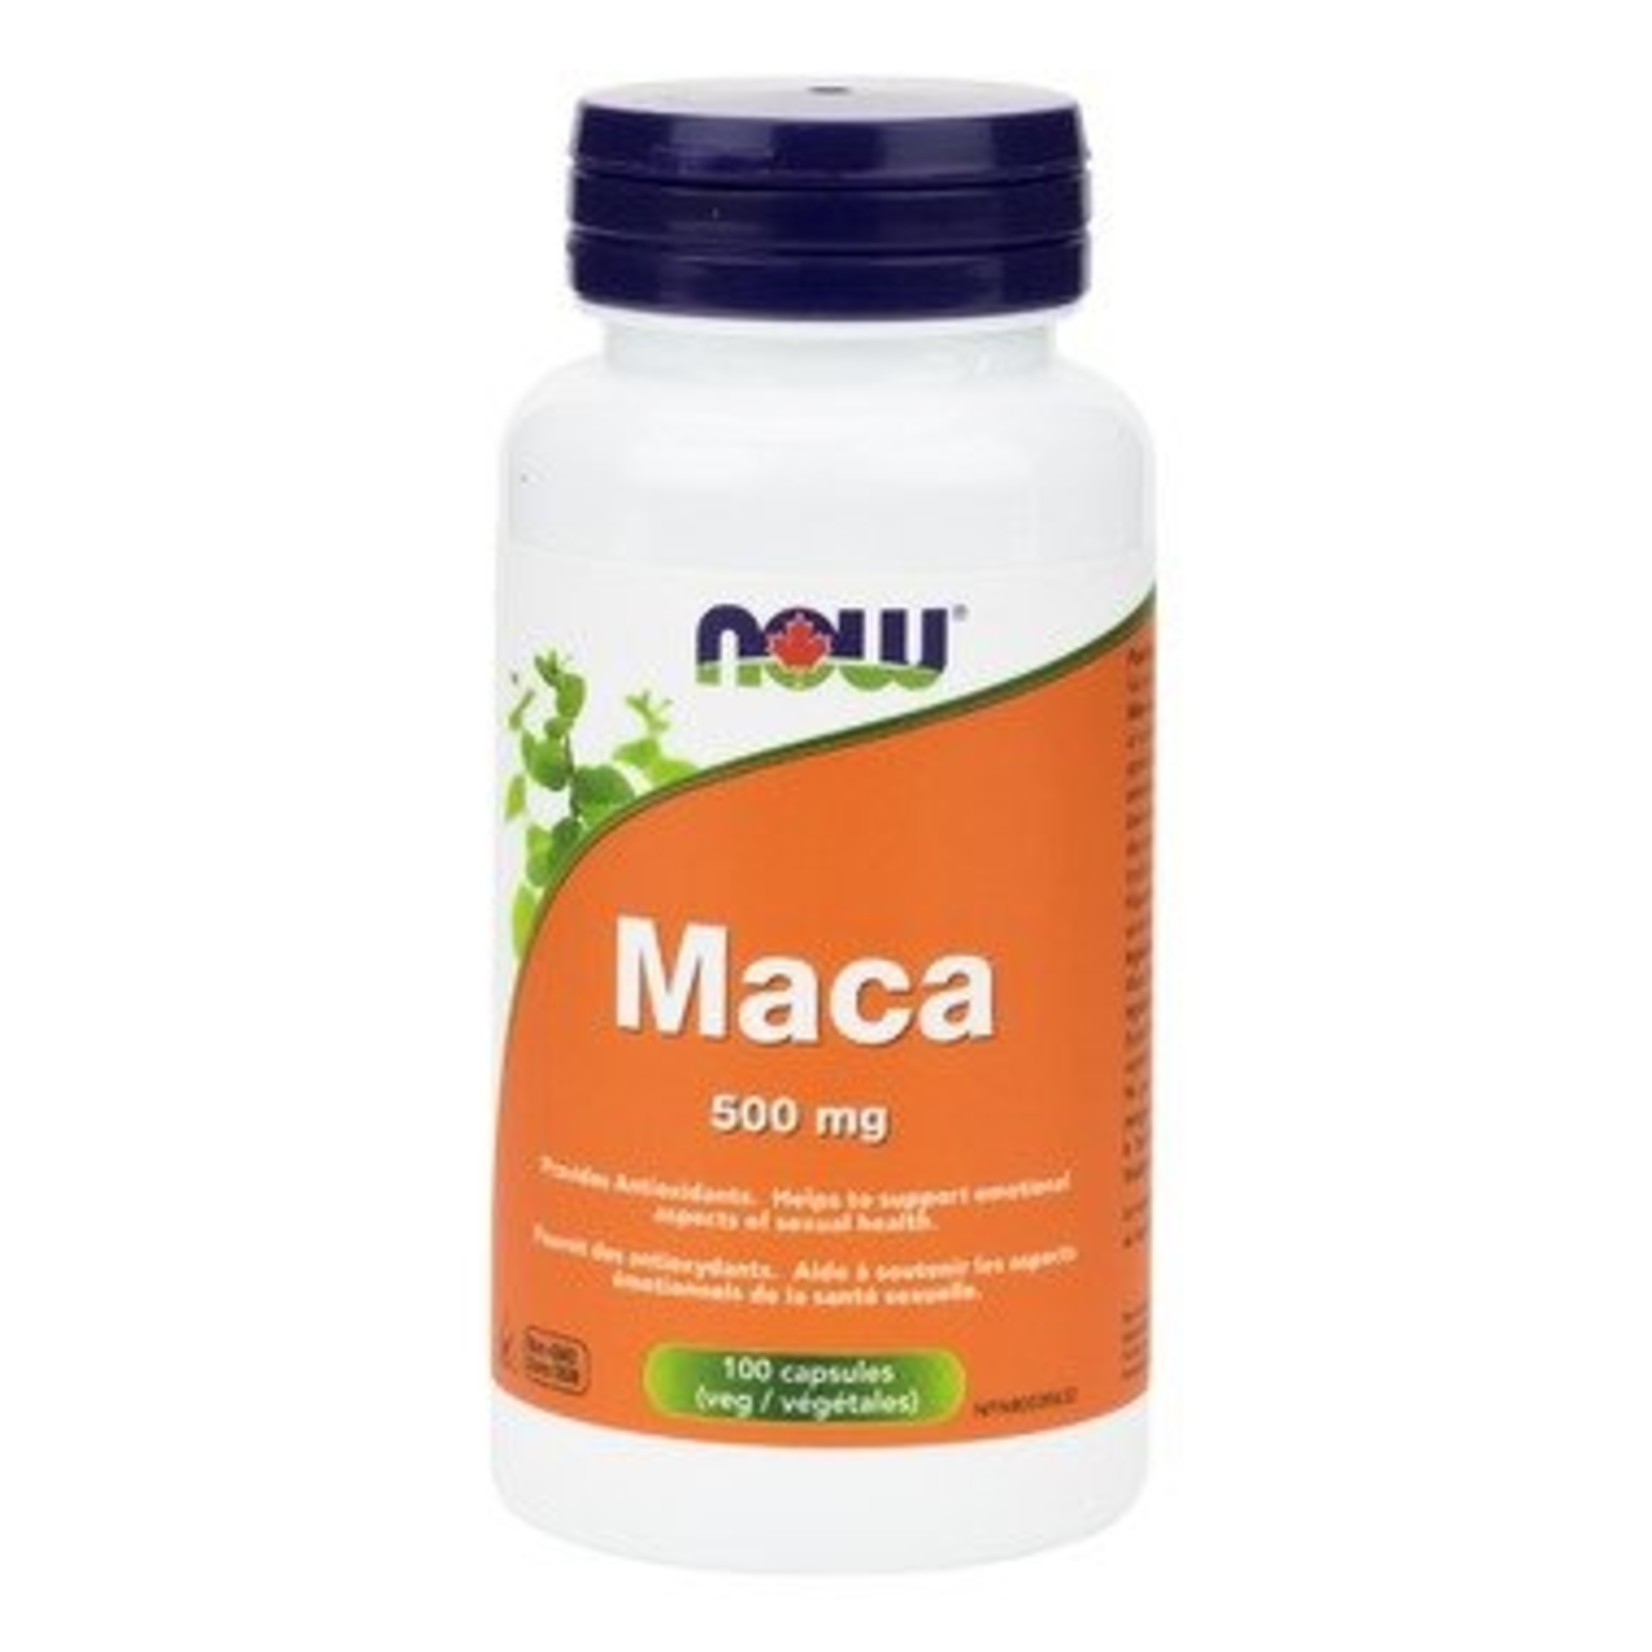 NOW NOW Maca 500mg 100vcaps